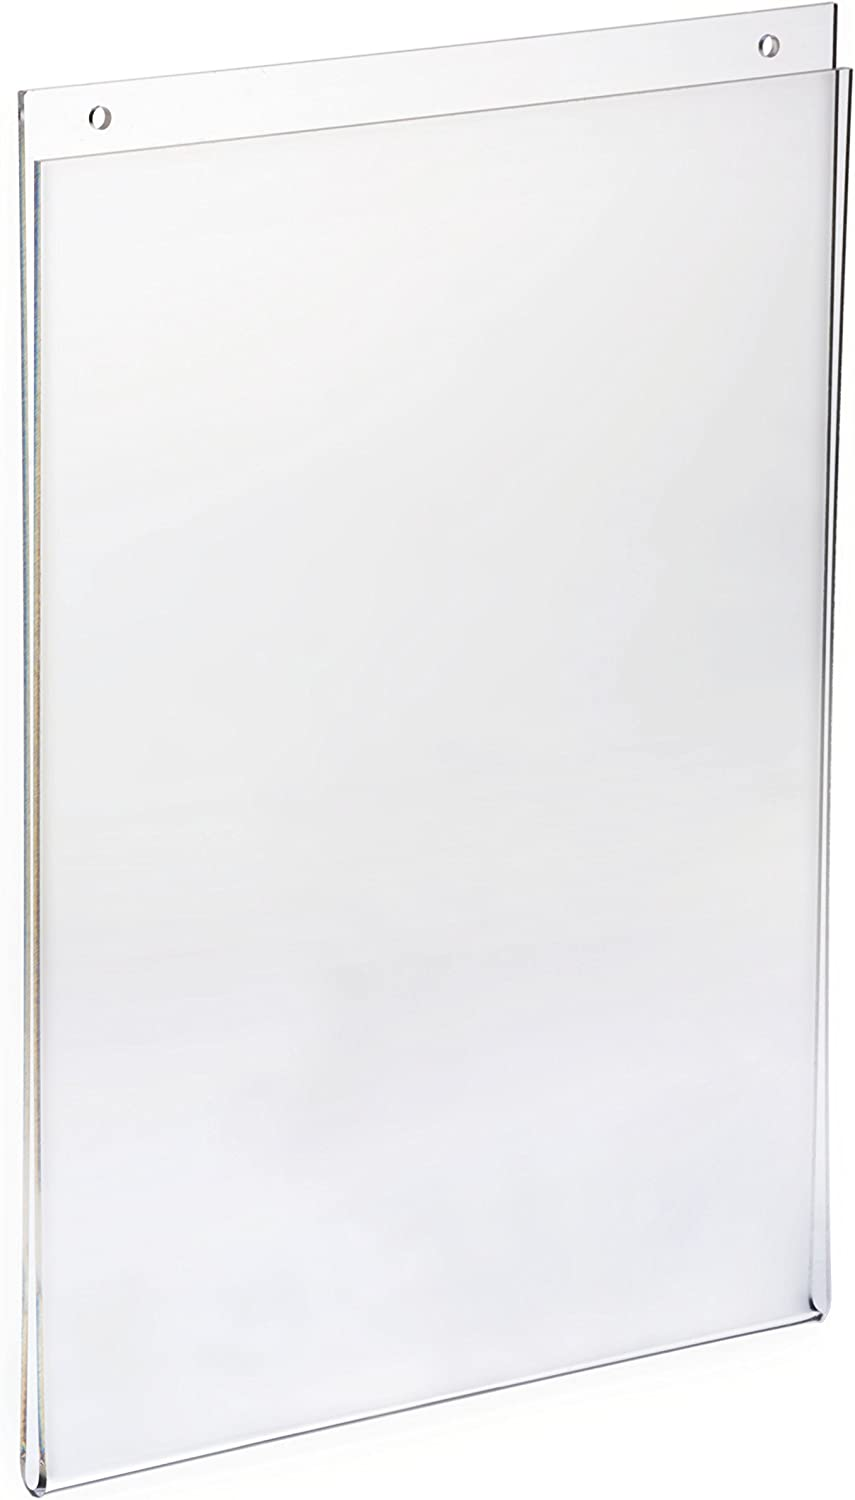 Displays2go Set of 10, Wall Mounted Sign Holder for 8.5 x 11 Inches Posters, Clear Acrylic, Easy Updating Without Removing The Frame from The Wall (FL8511)